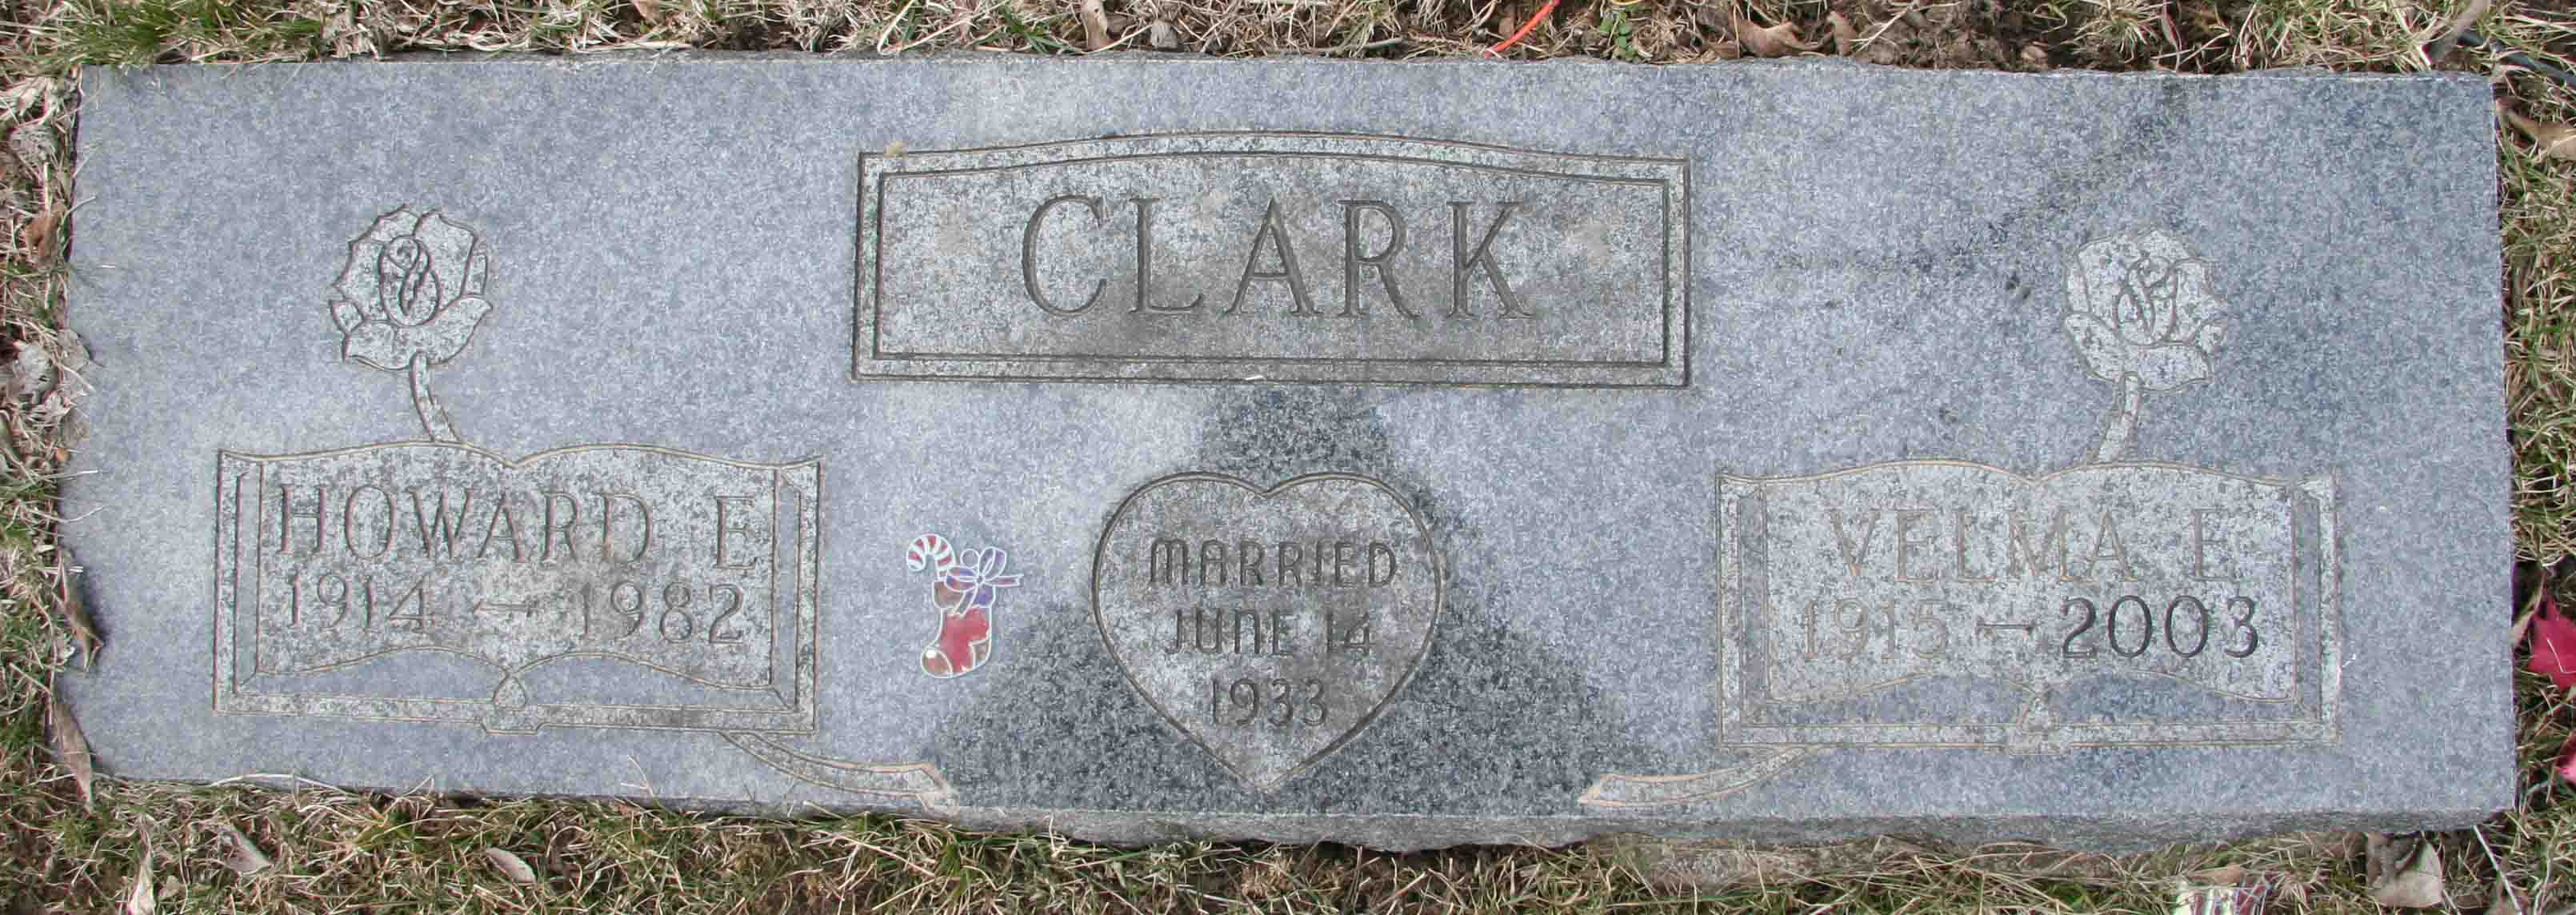 Howard Esley Clark